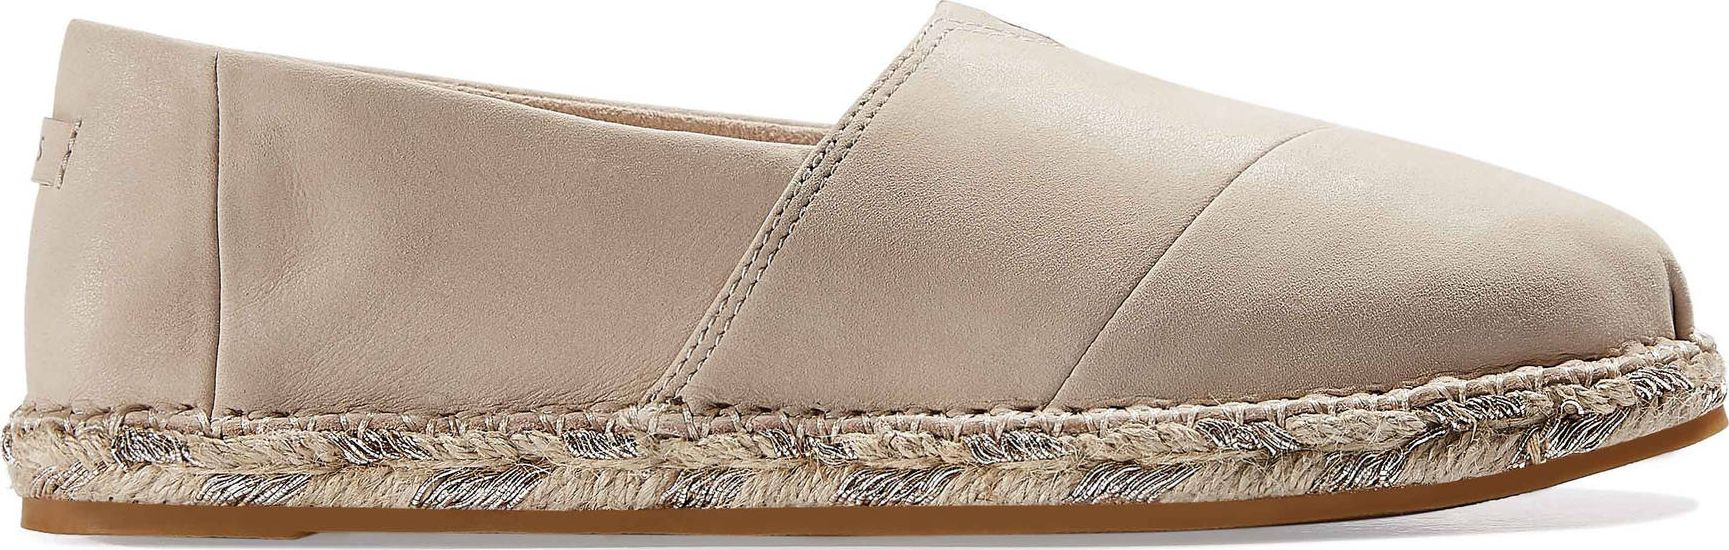 TOMS Leather Women's Esparto Macadamia 40